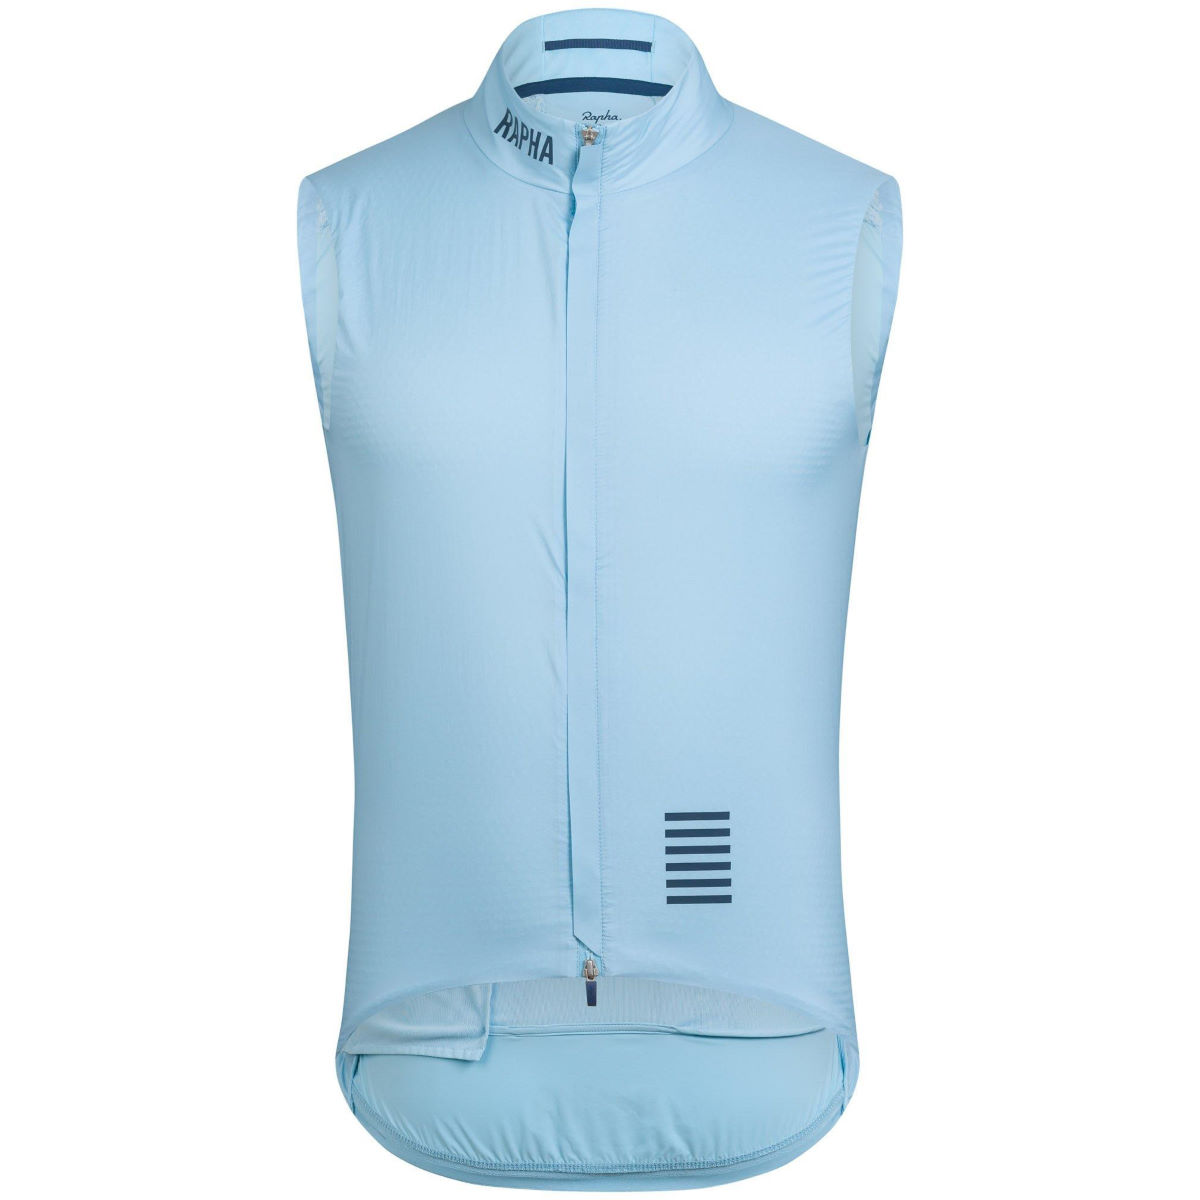 Chaleco Rapha Pro Team Insulated - Chalecos